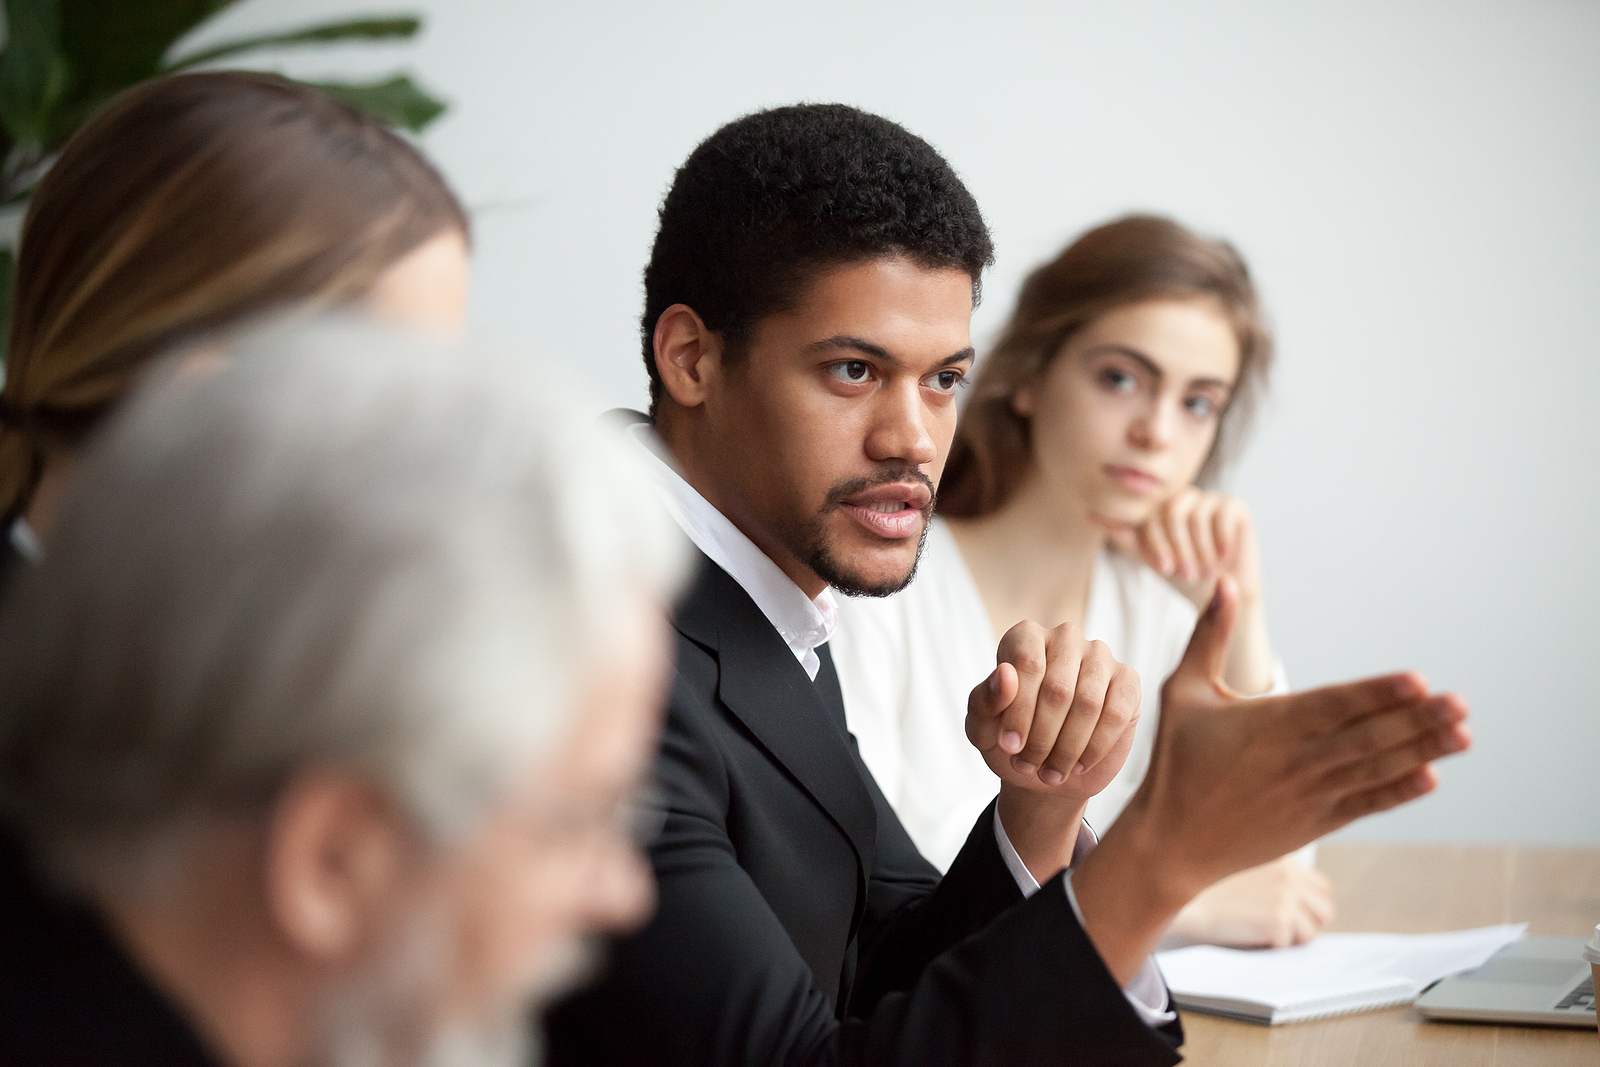 Why Employee Experience Needs More C-Suite Attention